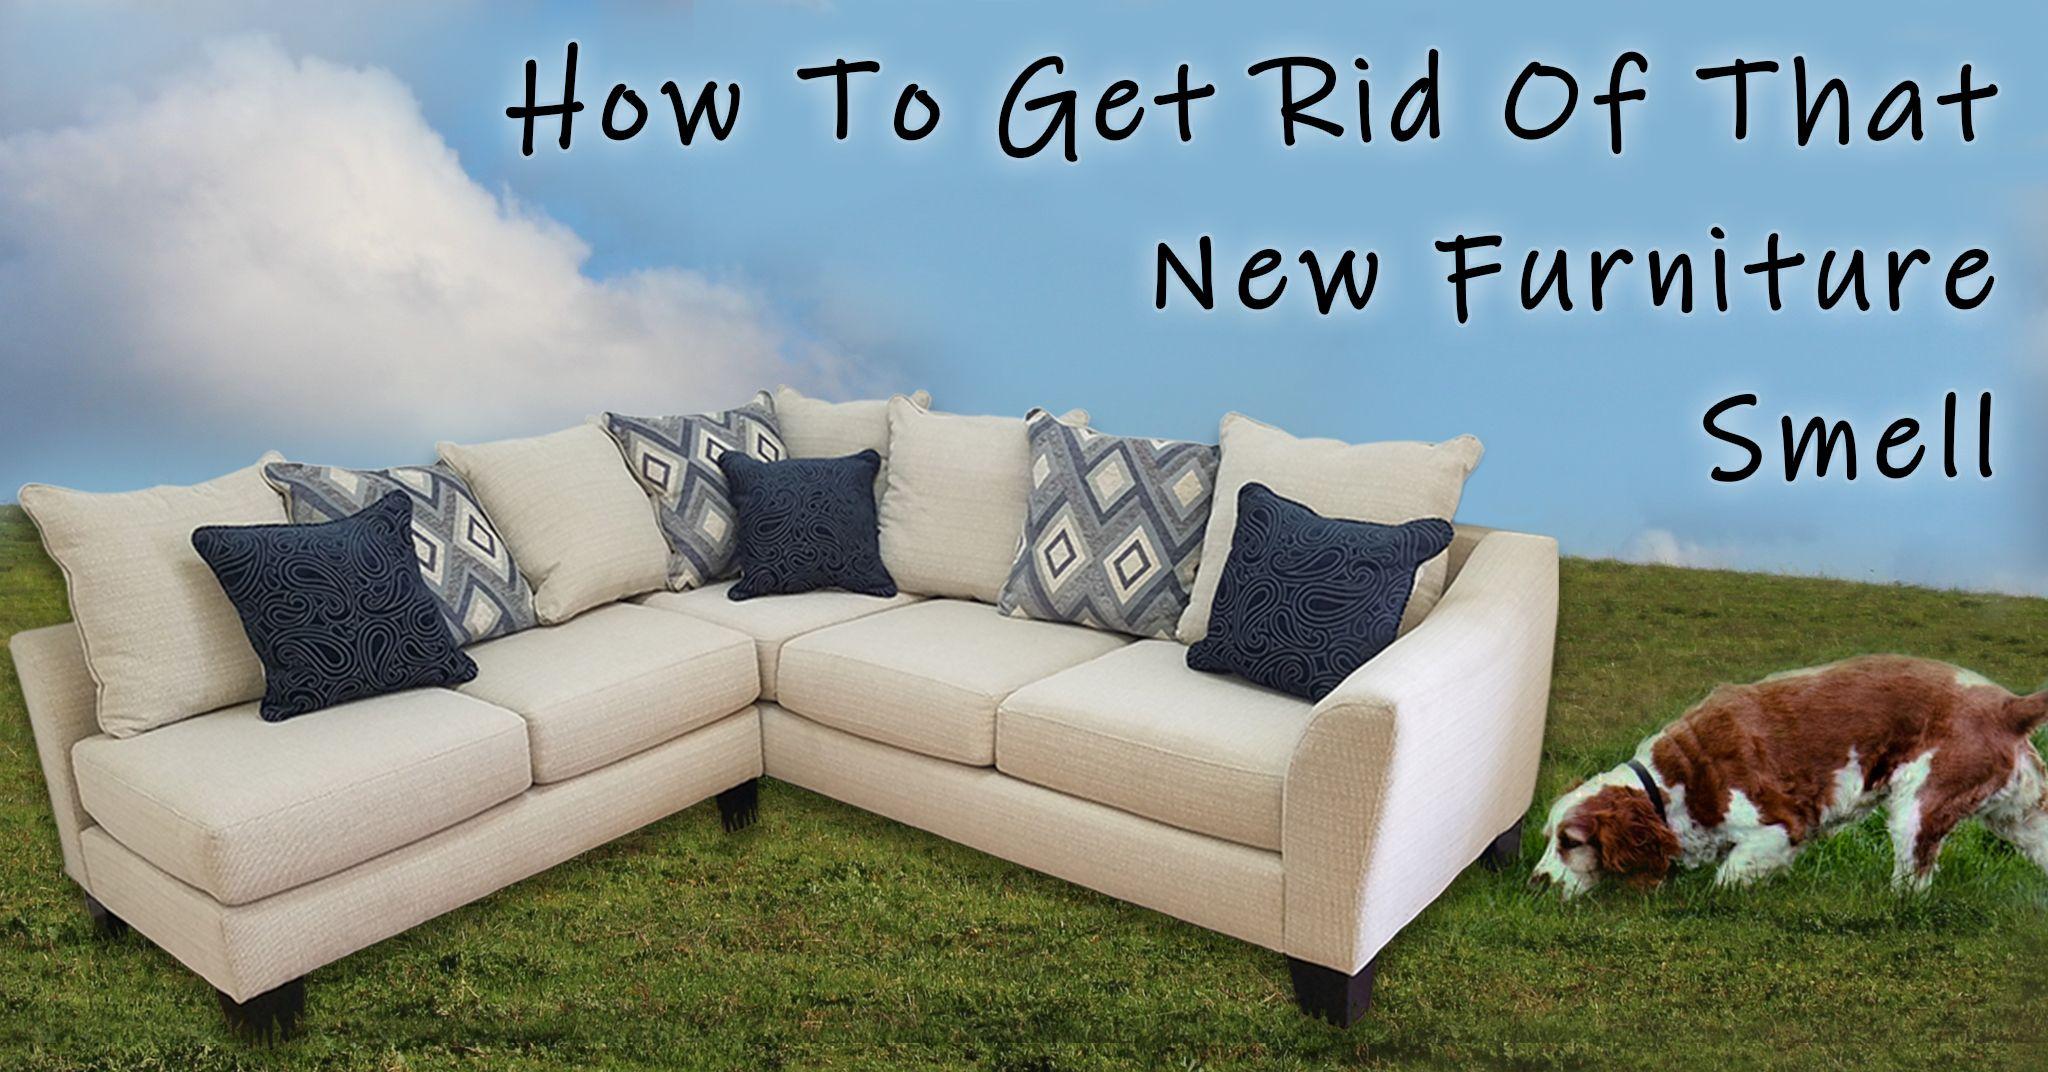 How To Get Rid Of That New Furniture Smell New Furniture